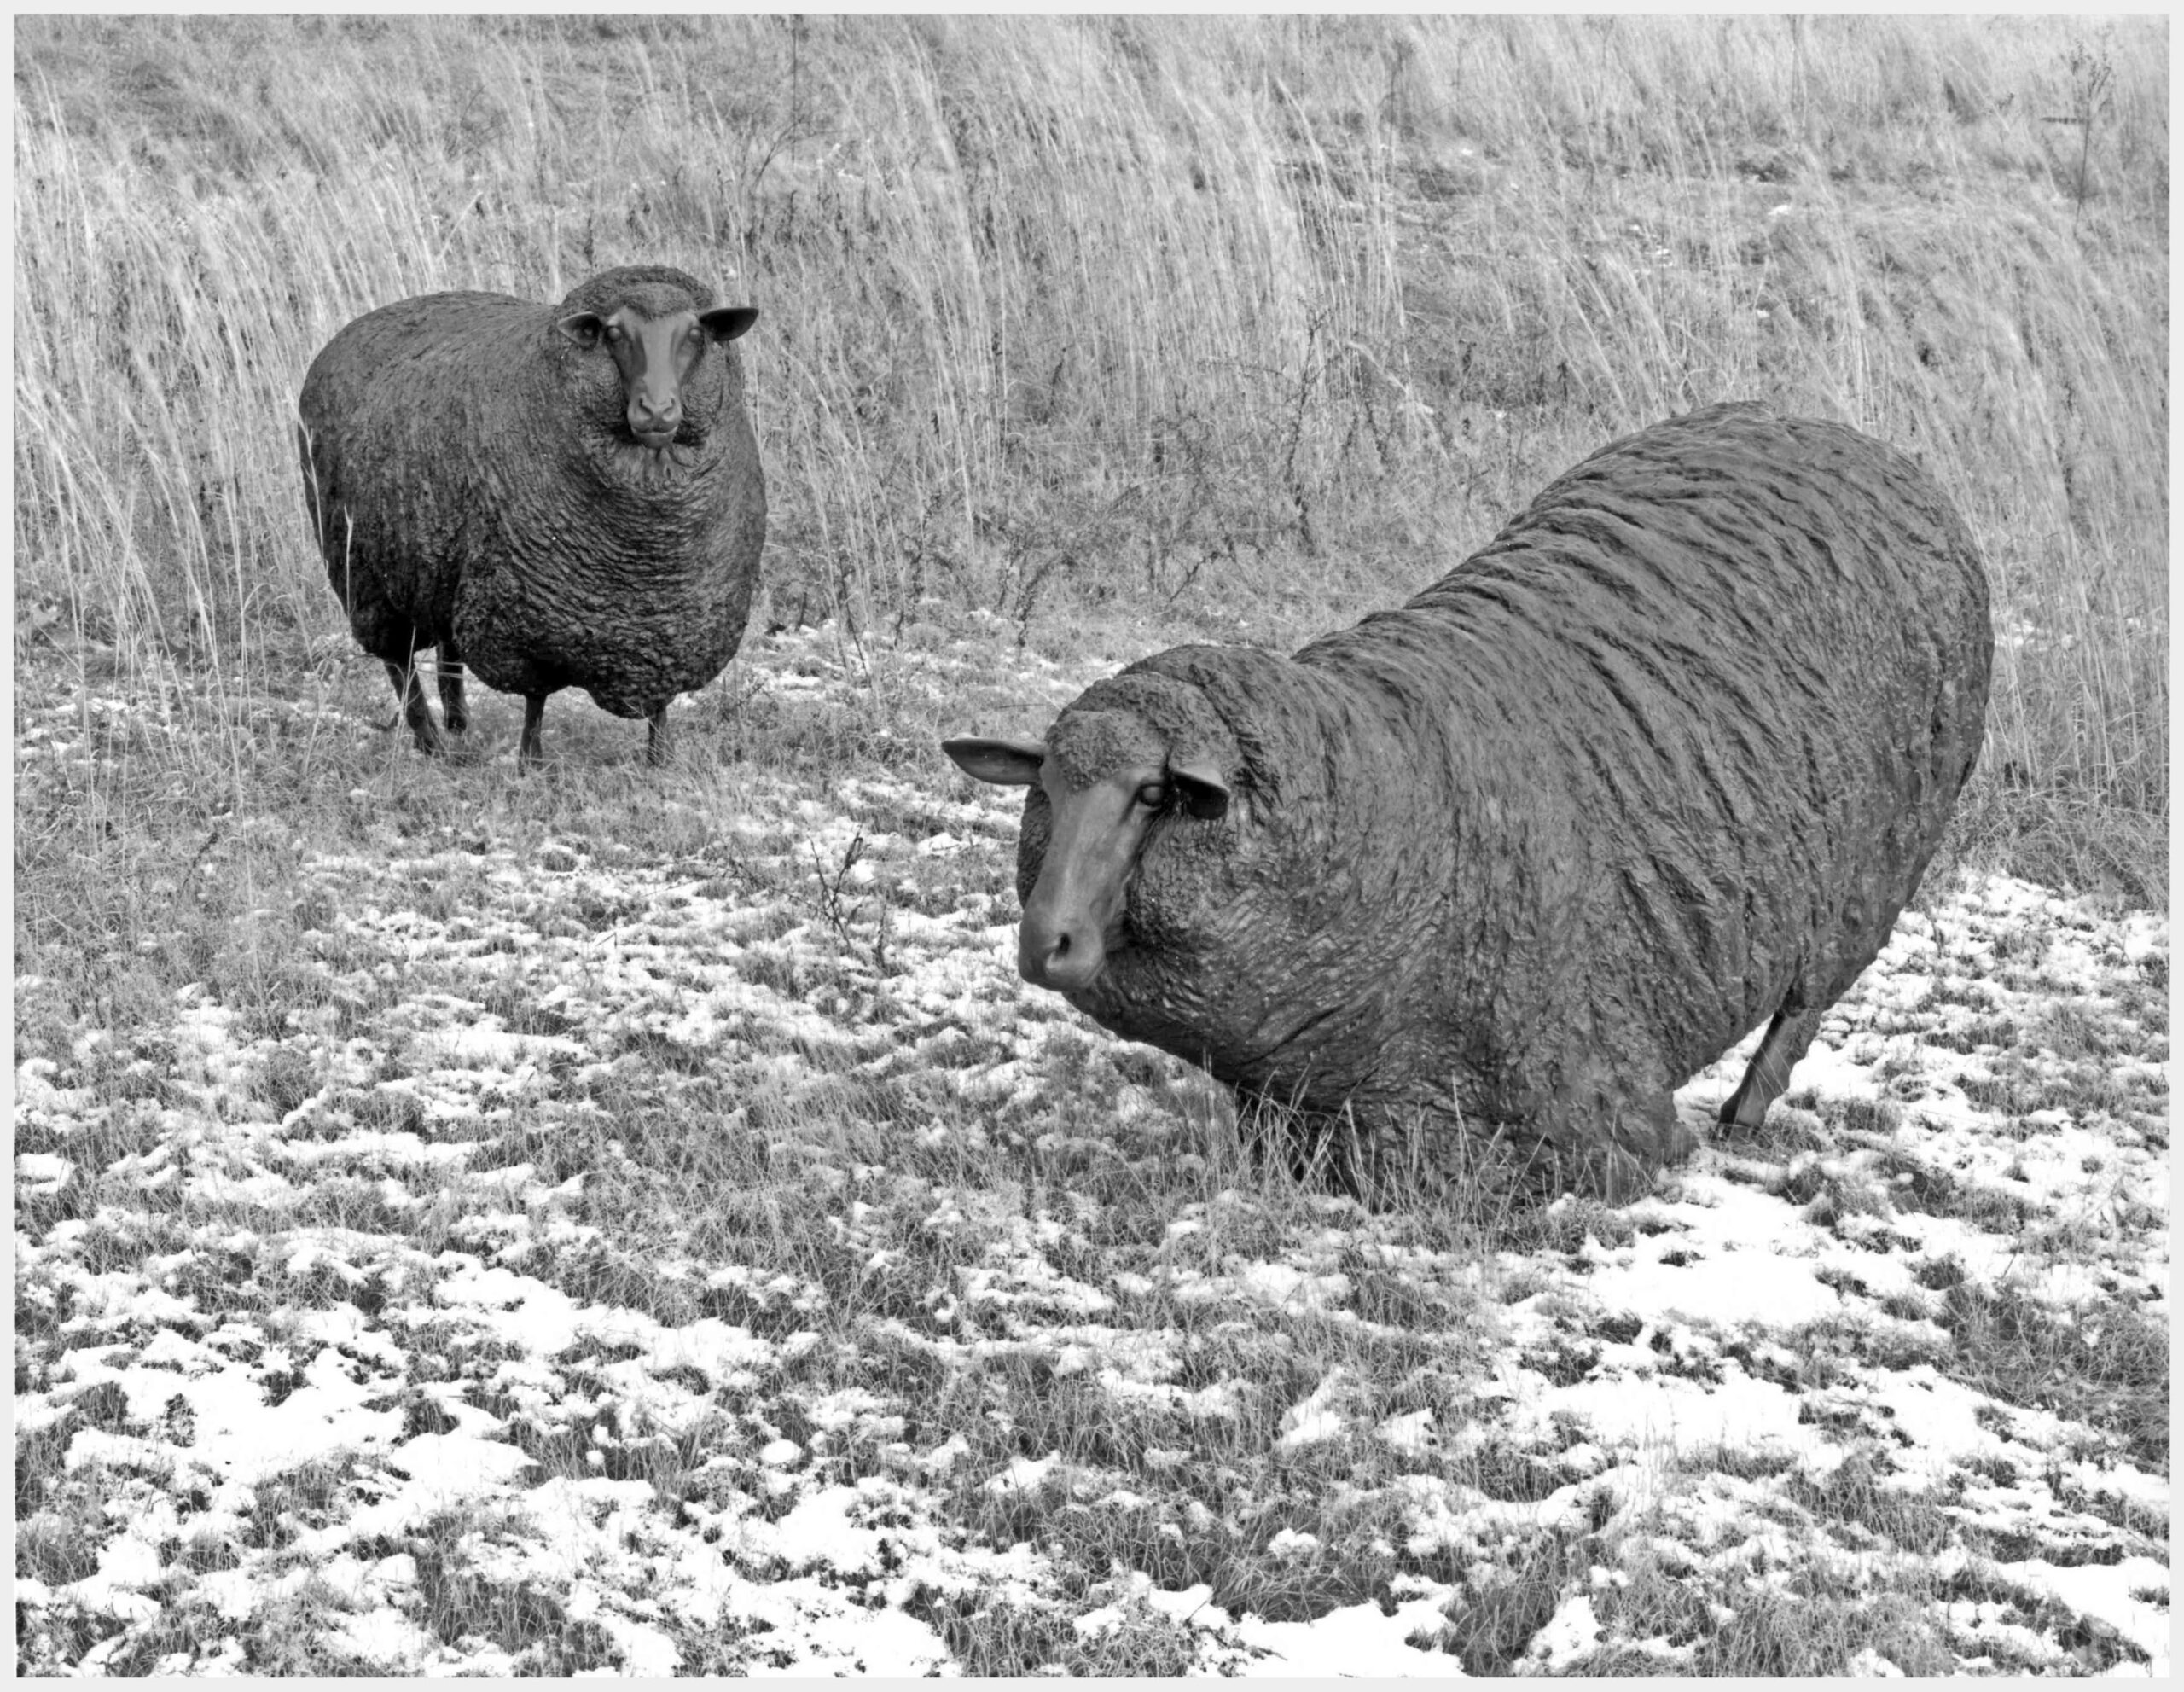 Realistic life-size bronze sculpture of a pair of sheep one rising from its knees head turned left and the other standing head turned to the right both watching in alarm